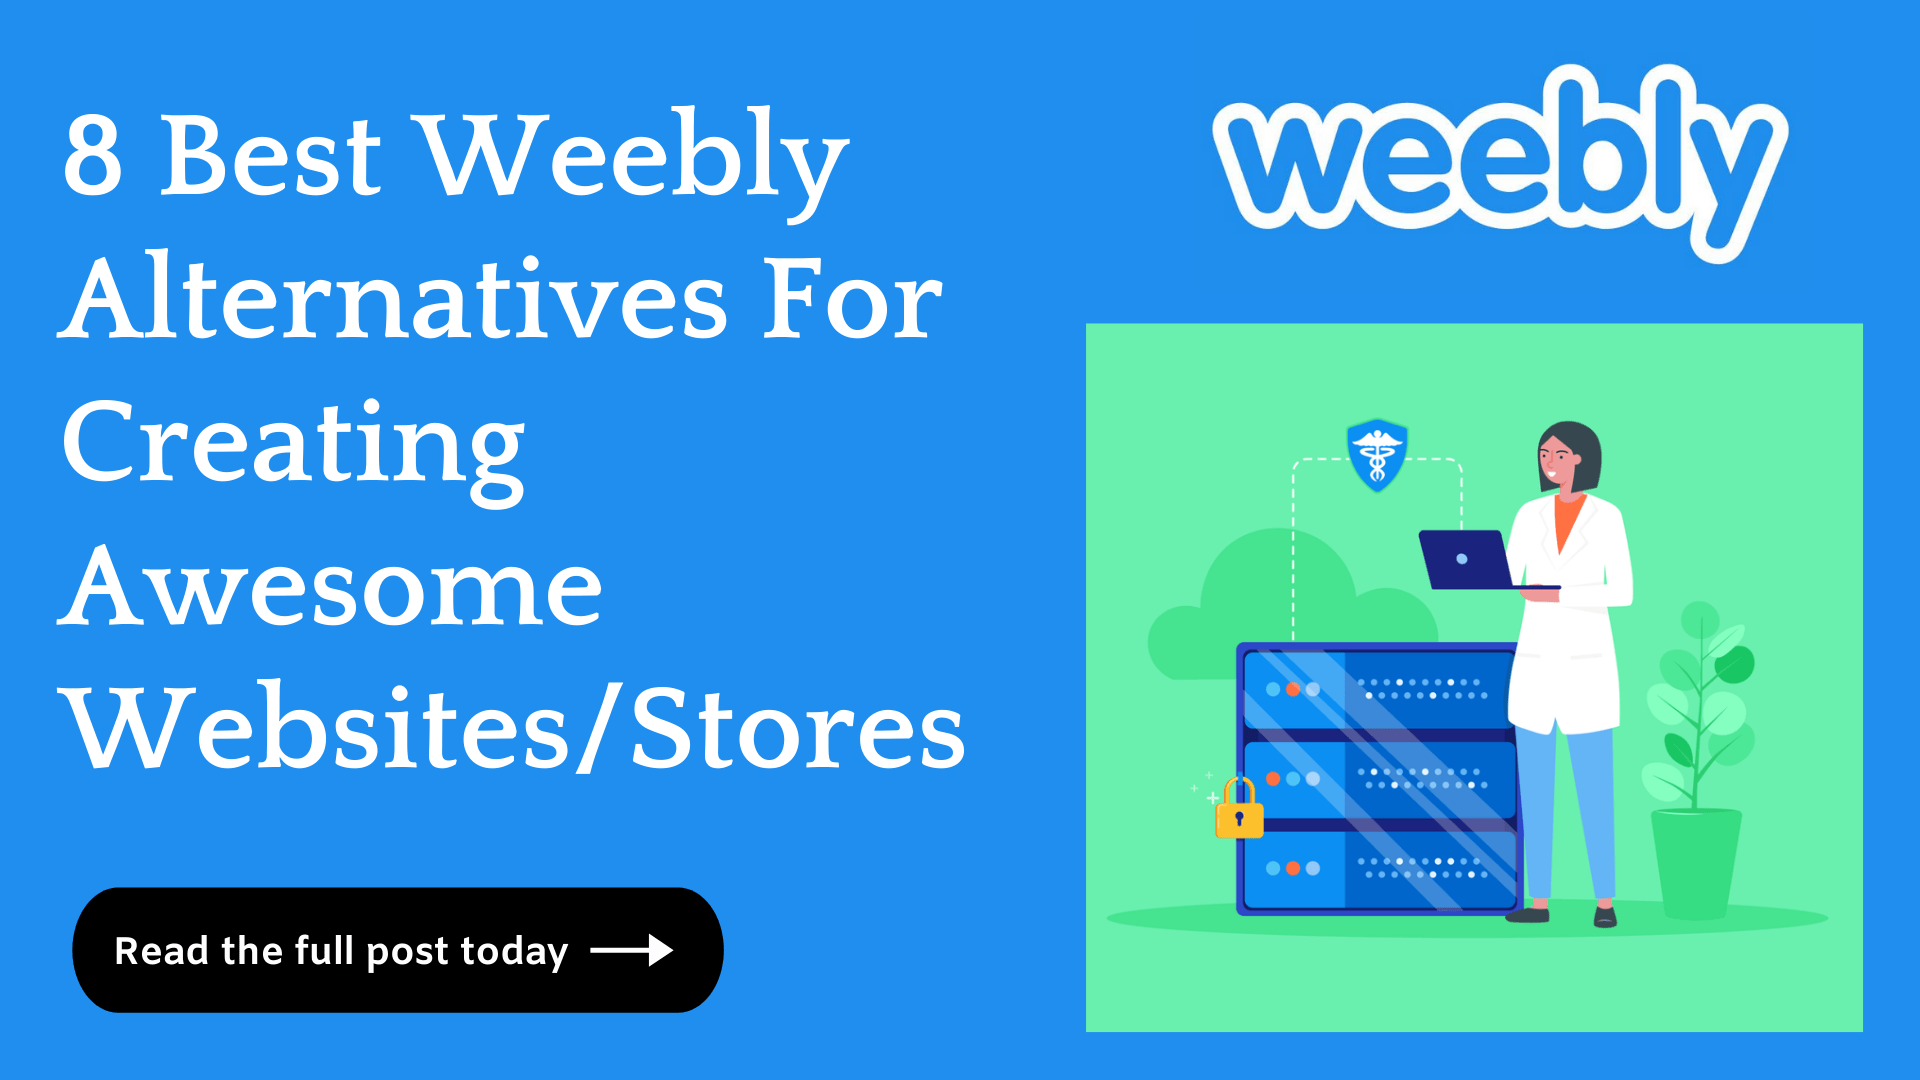 8 Best Weebly Alternatives To Create Stunning Websites/Stores